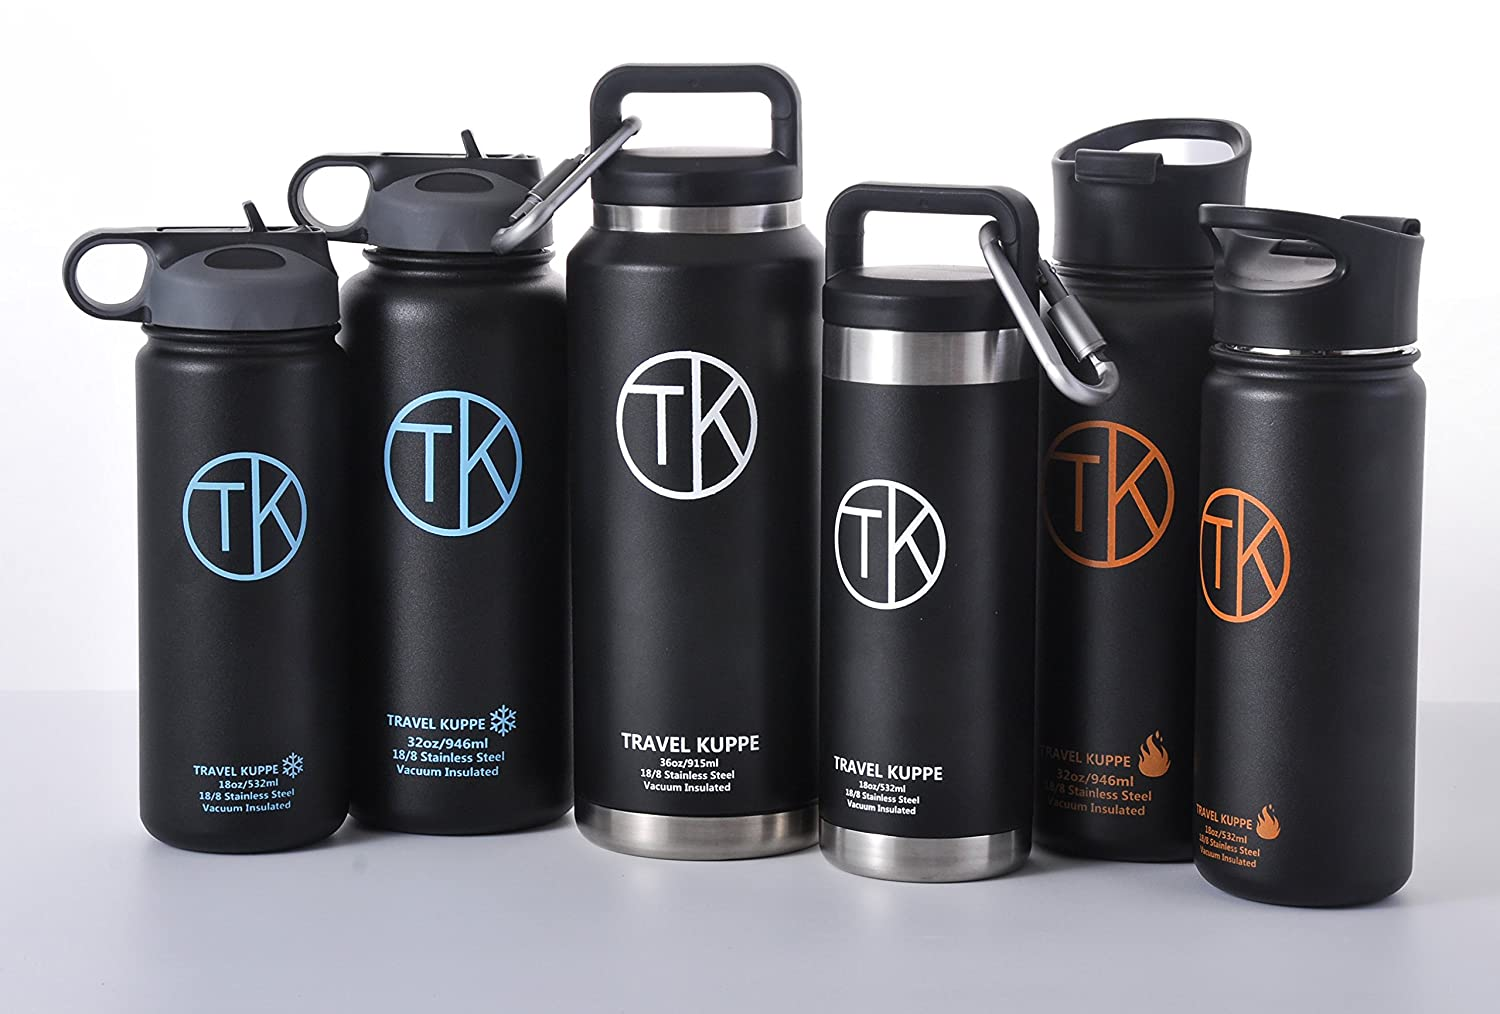 Exceptional Amazon.com : TK Fire (18 Oz) Stainless Steel Bottle Vacuum Insulated Travel  Mug With Sip Lid   Keeps Hot U0026 Cold Beverages Up To 48 Hours   Double  Walled ...